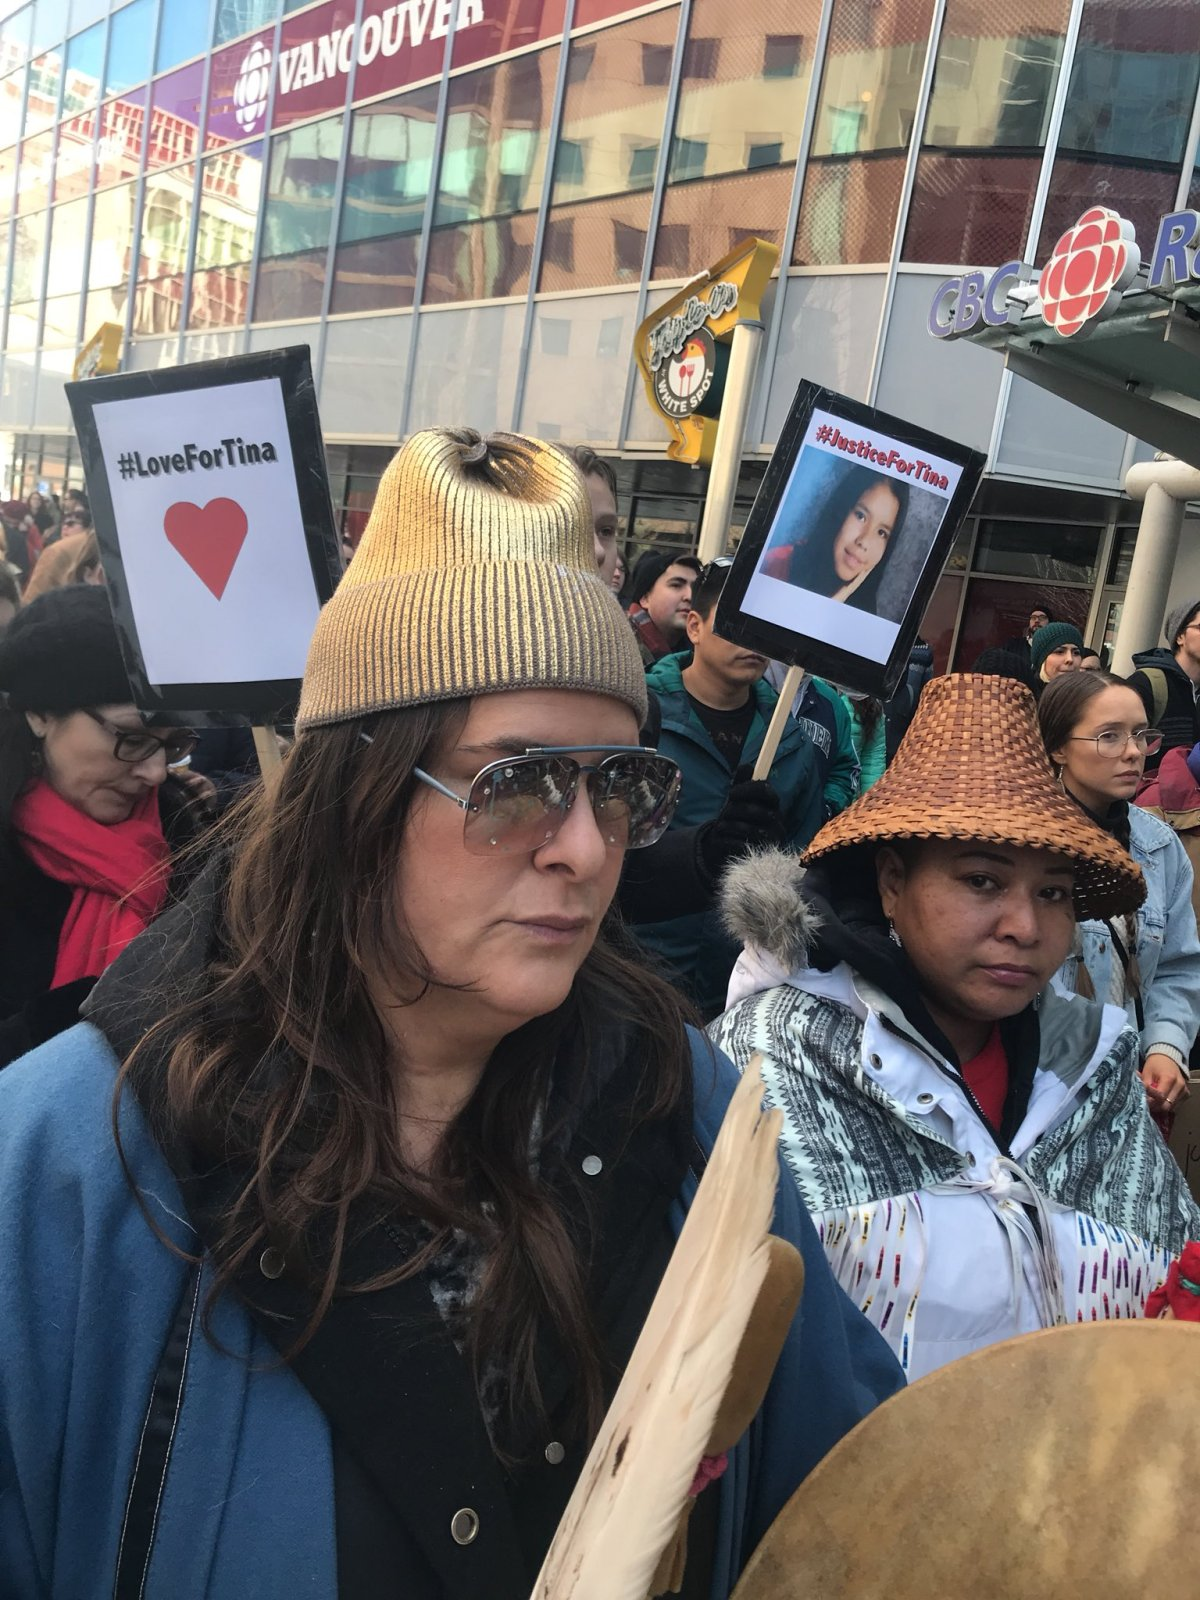 Dozens marched through downtown Vancouver on Saturday asking for the federal government to make changes to protect Indigenous people following the acquittal of Raymond Cormier.